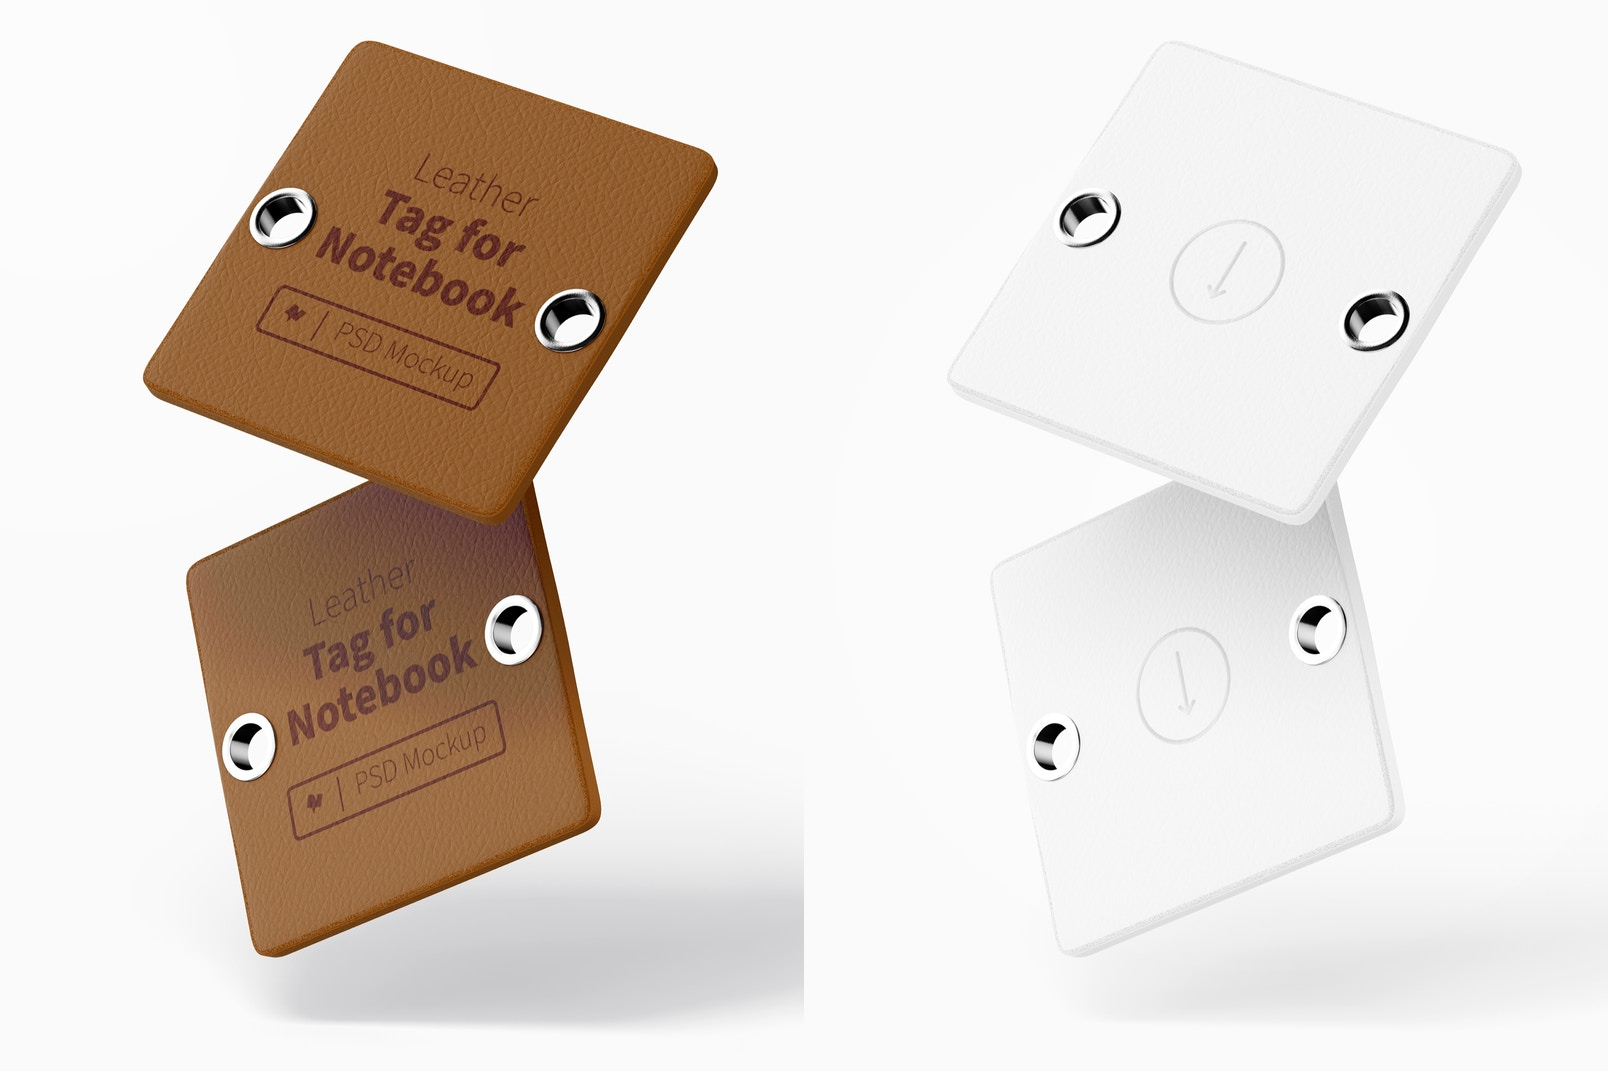 Leather Tag For Notebook Mockup, Floating